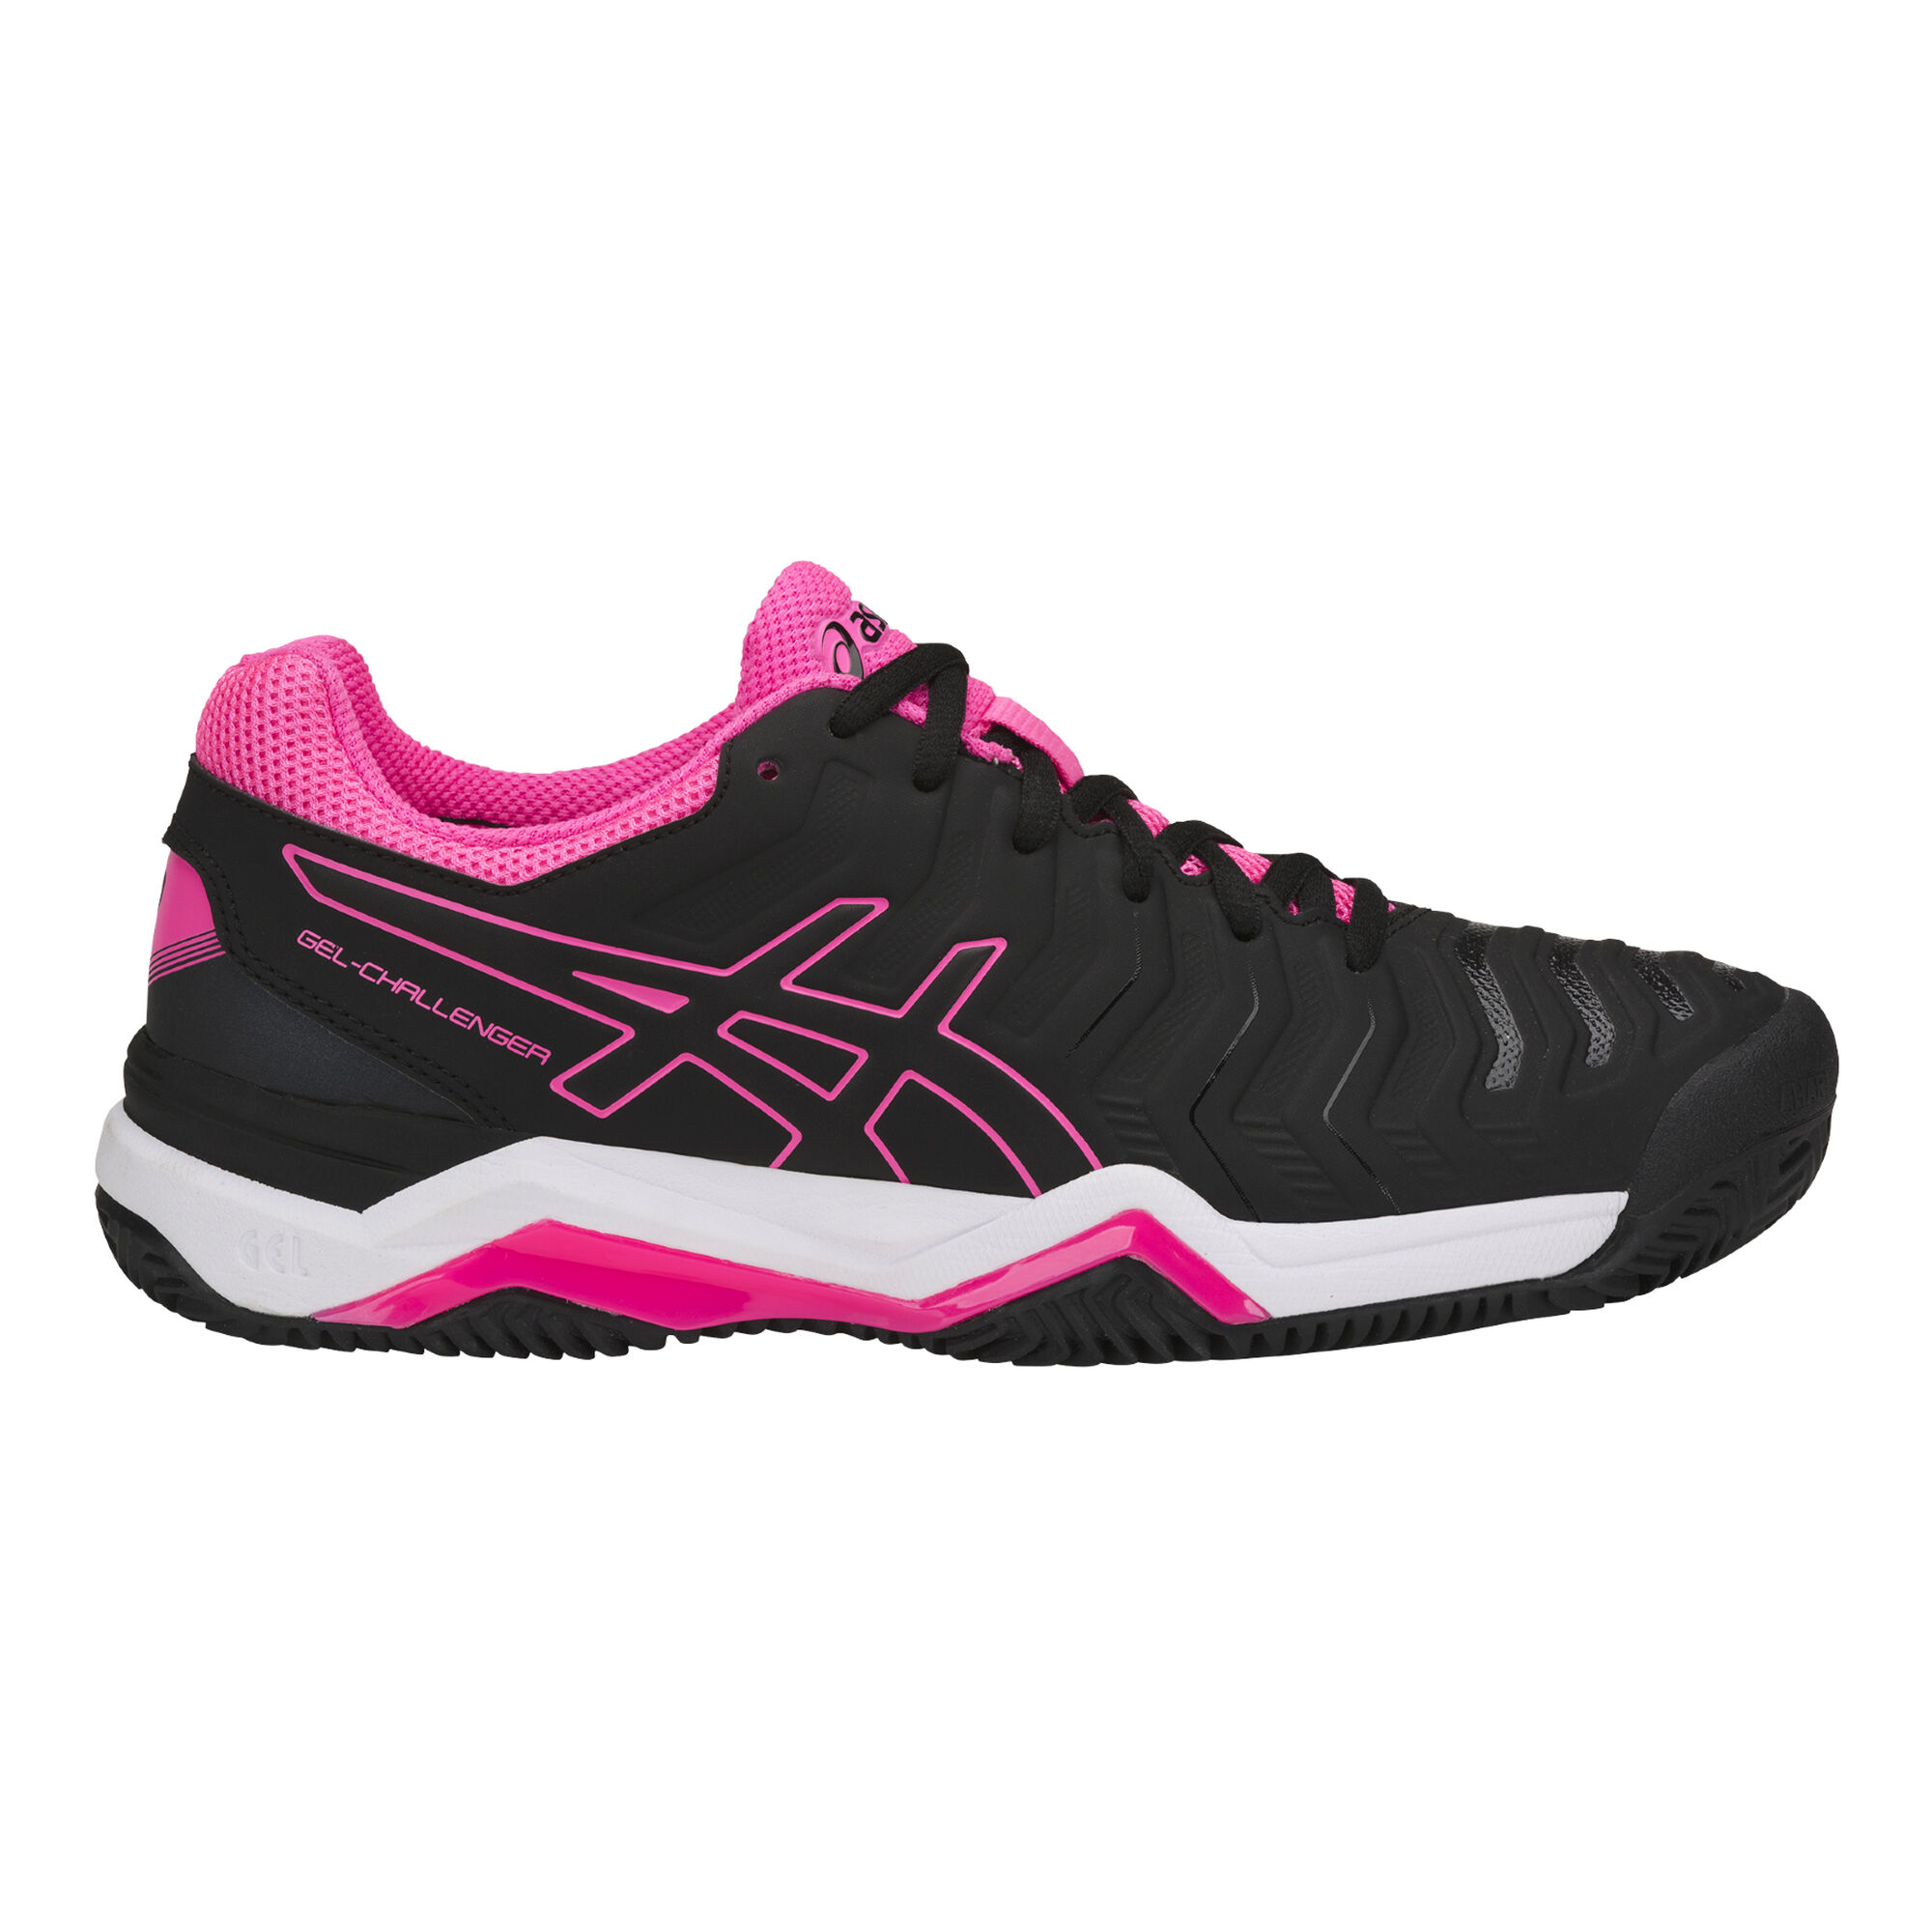 58c6cf25bf2 Asics  Asics  Asics  Asics  Asics  Asics. Gel-Challenger 11 Clay ...